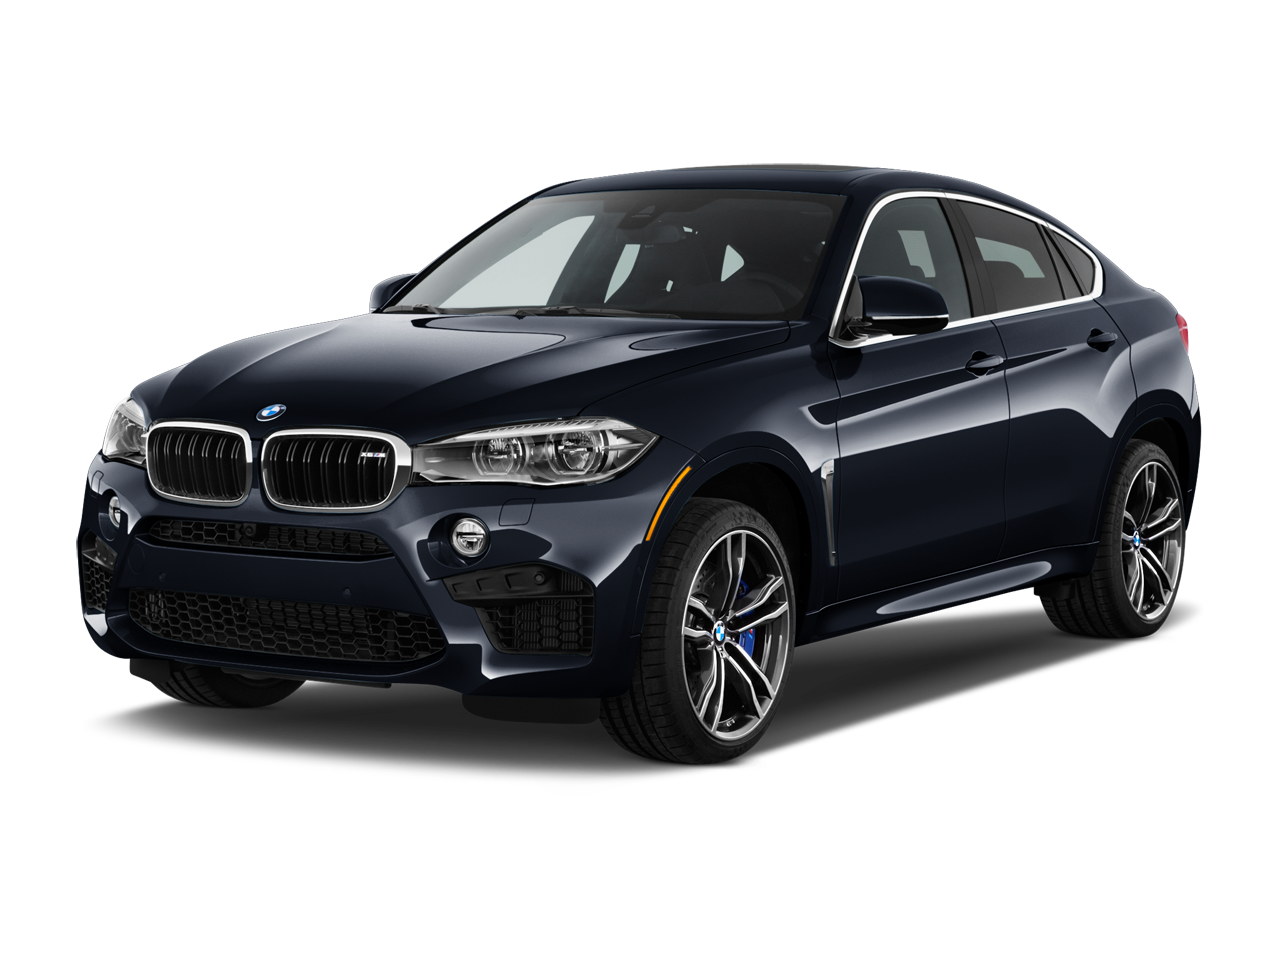 New 2018 Bmw X6 Sdrive35i West Palm Beach Fl Near Ft